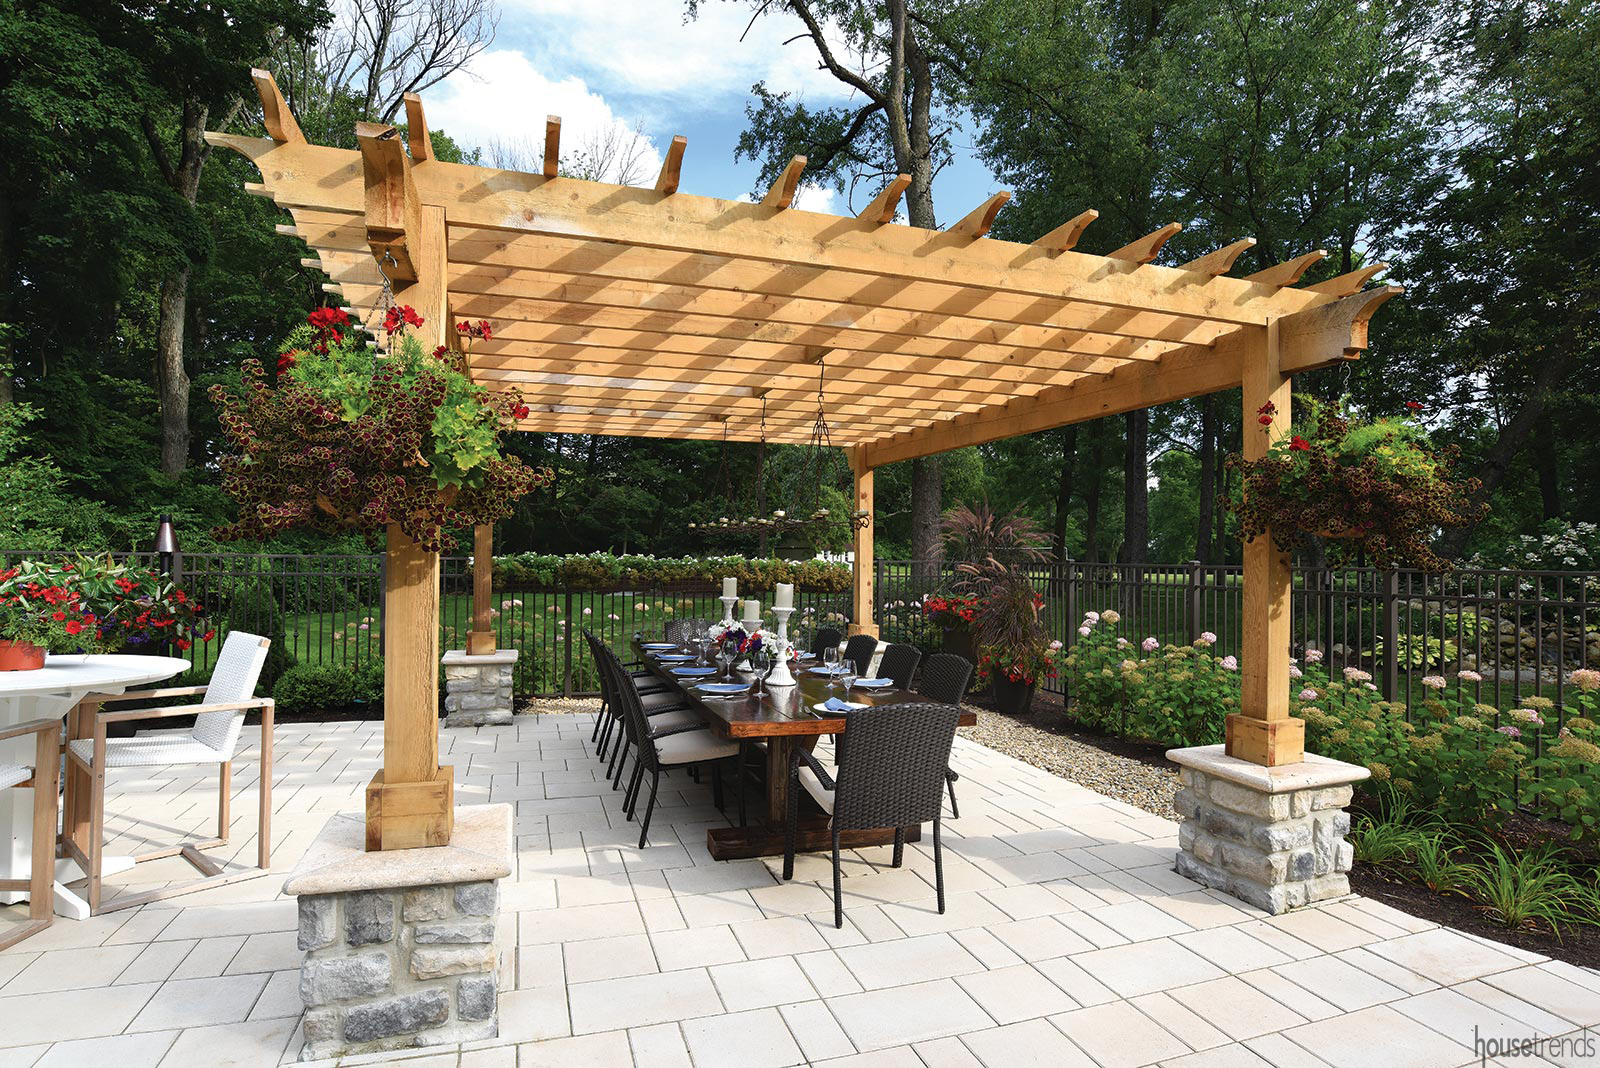 Pergola shelters an outdoor dining area